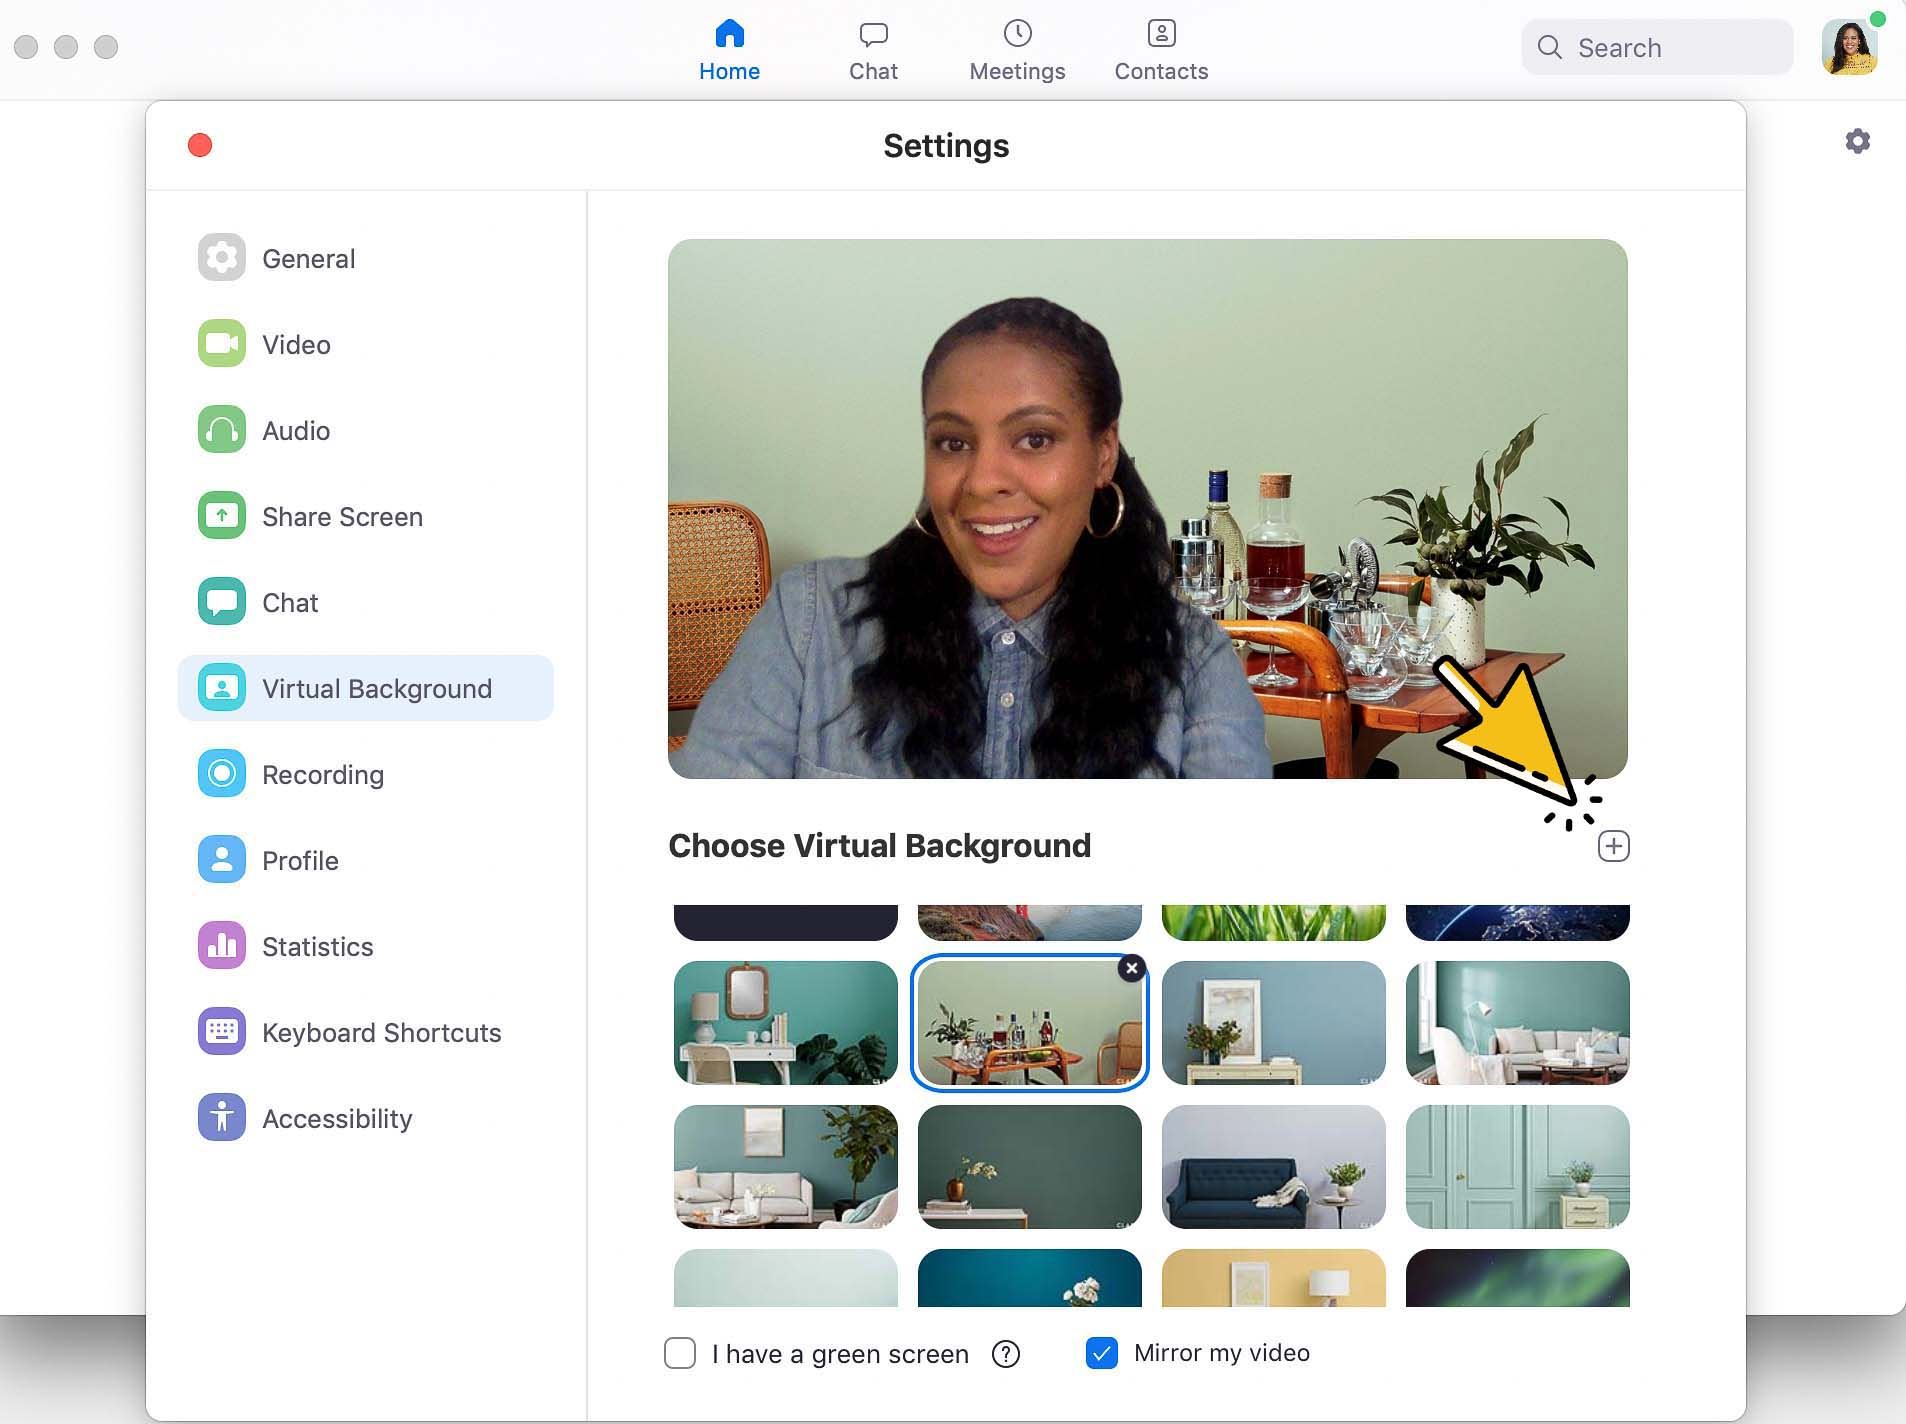 Instructions on how to upload a zoom background plus 8 fun zoom backgrounds you can download to instantly upgrade your video calls.